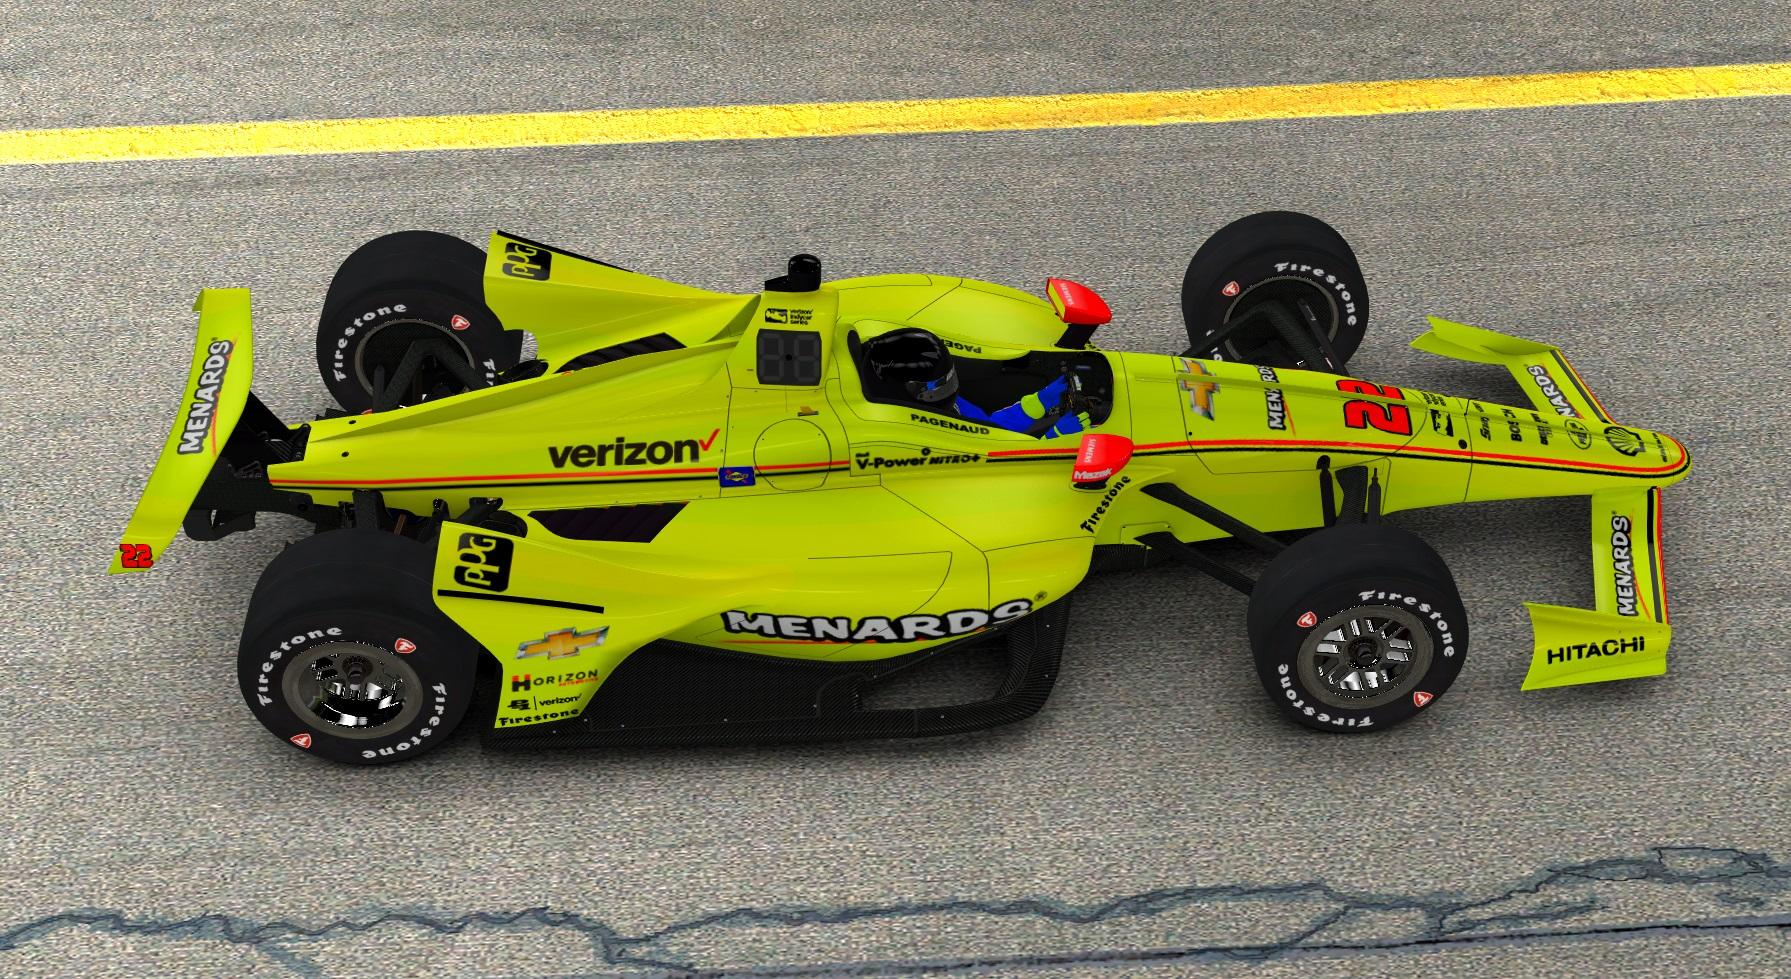 Preview of 2018 Menards Pagenaud by John Paquin